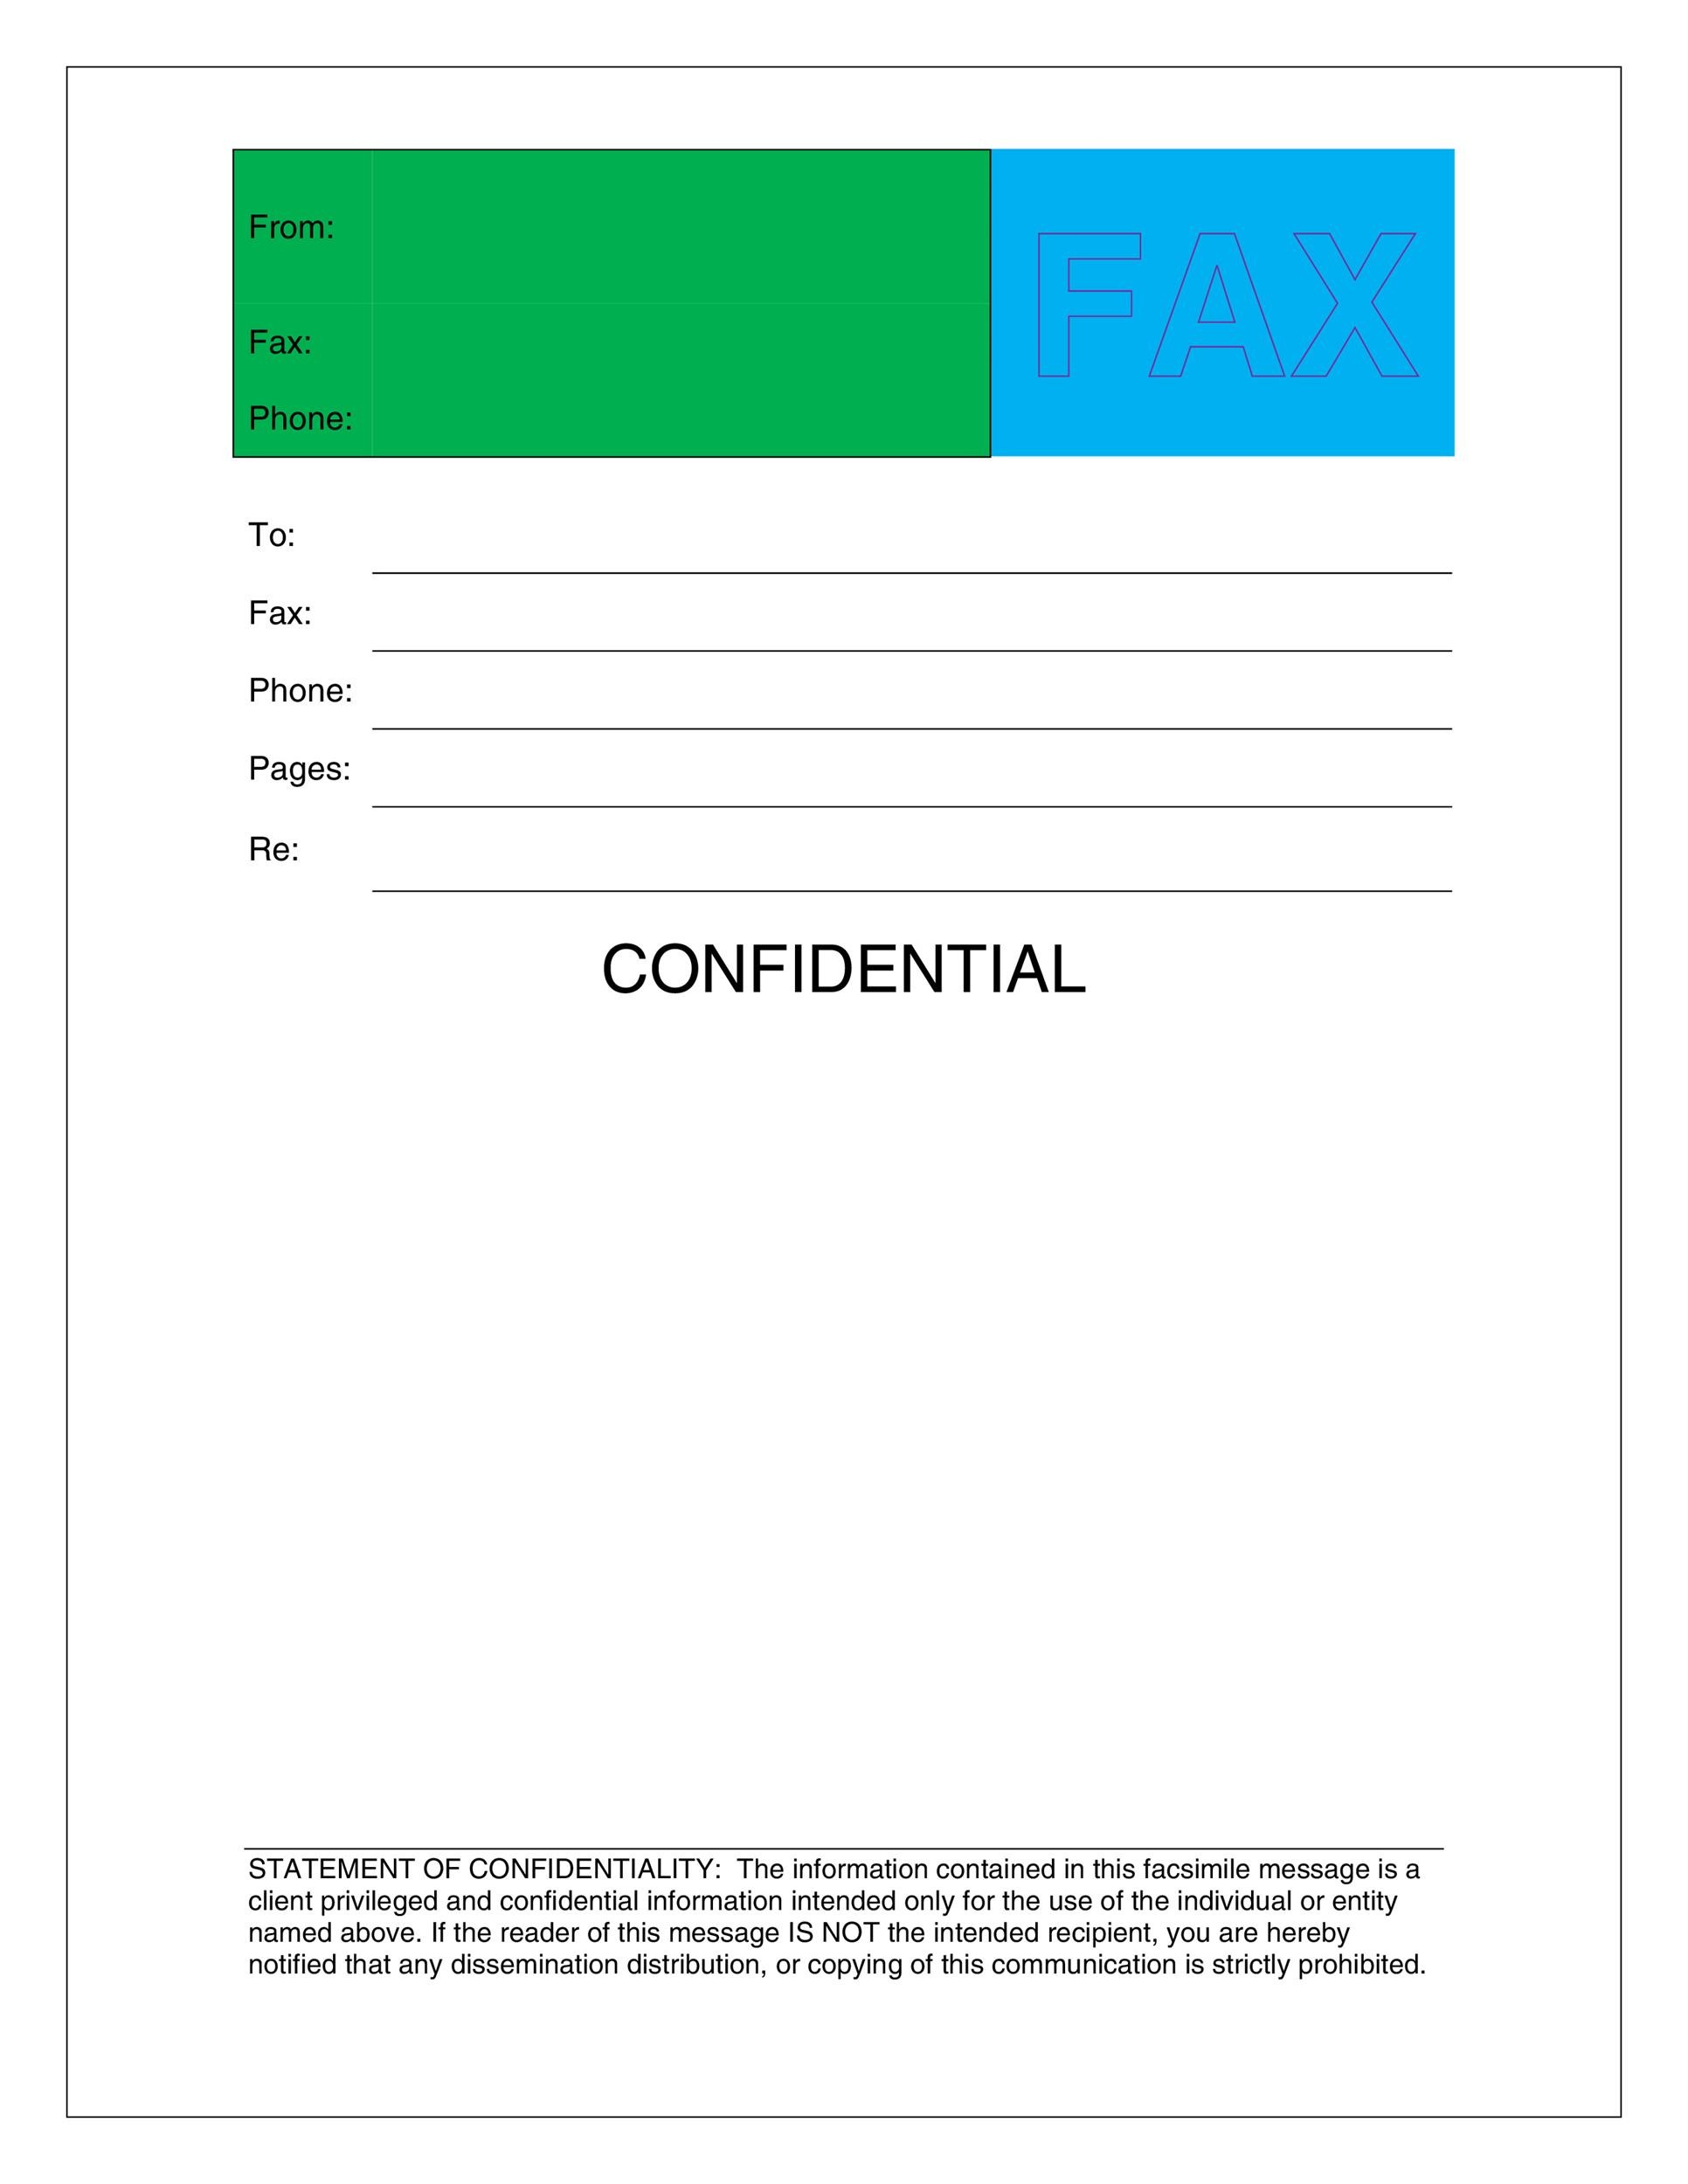 Printable Fax Cover Sheet Template 02  Blank Fax Cover Sheet Free